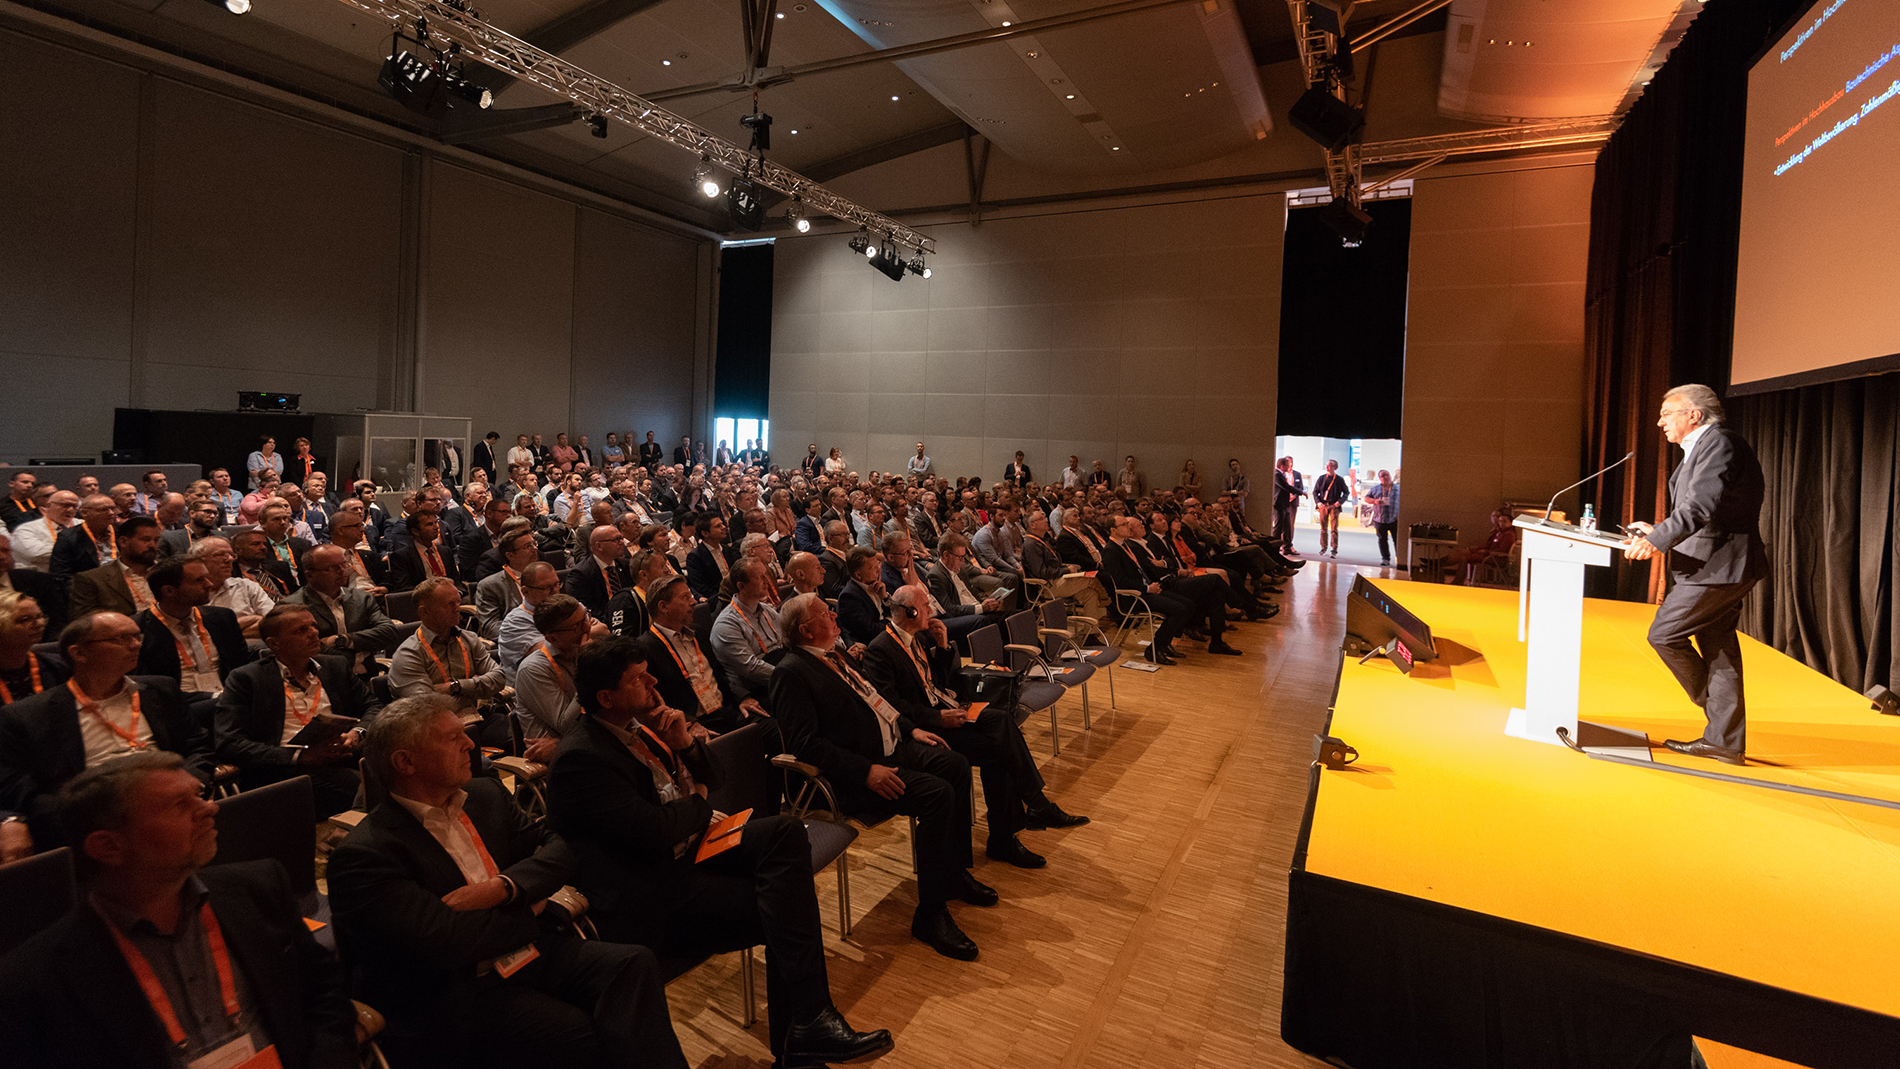 E2 Forum Frankfurt 2018: Forum of innovations, impulses and contacts for around  420 experts for vertical and horizontal mobility in tomorrow's buildings (Image: Messe Frankfurt GmbH / Sandra Gätke)